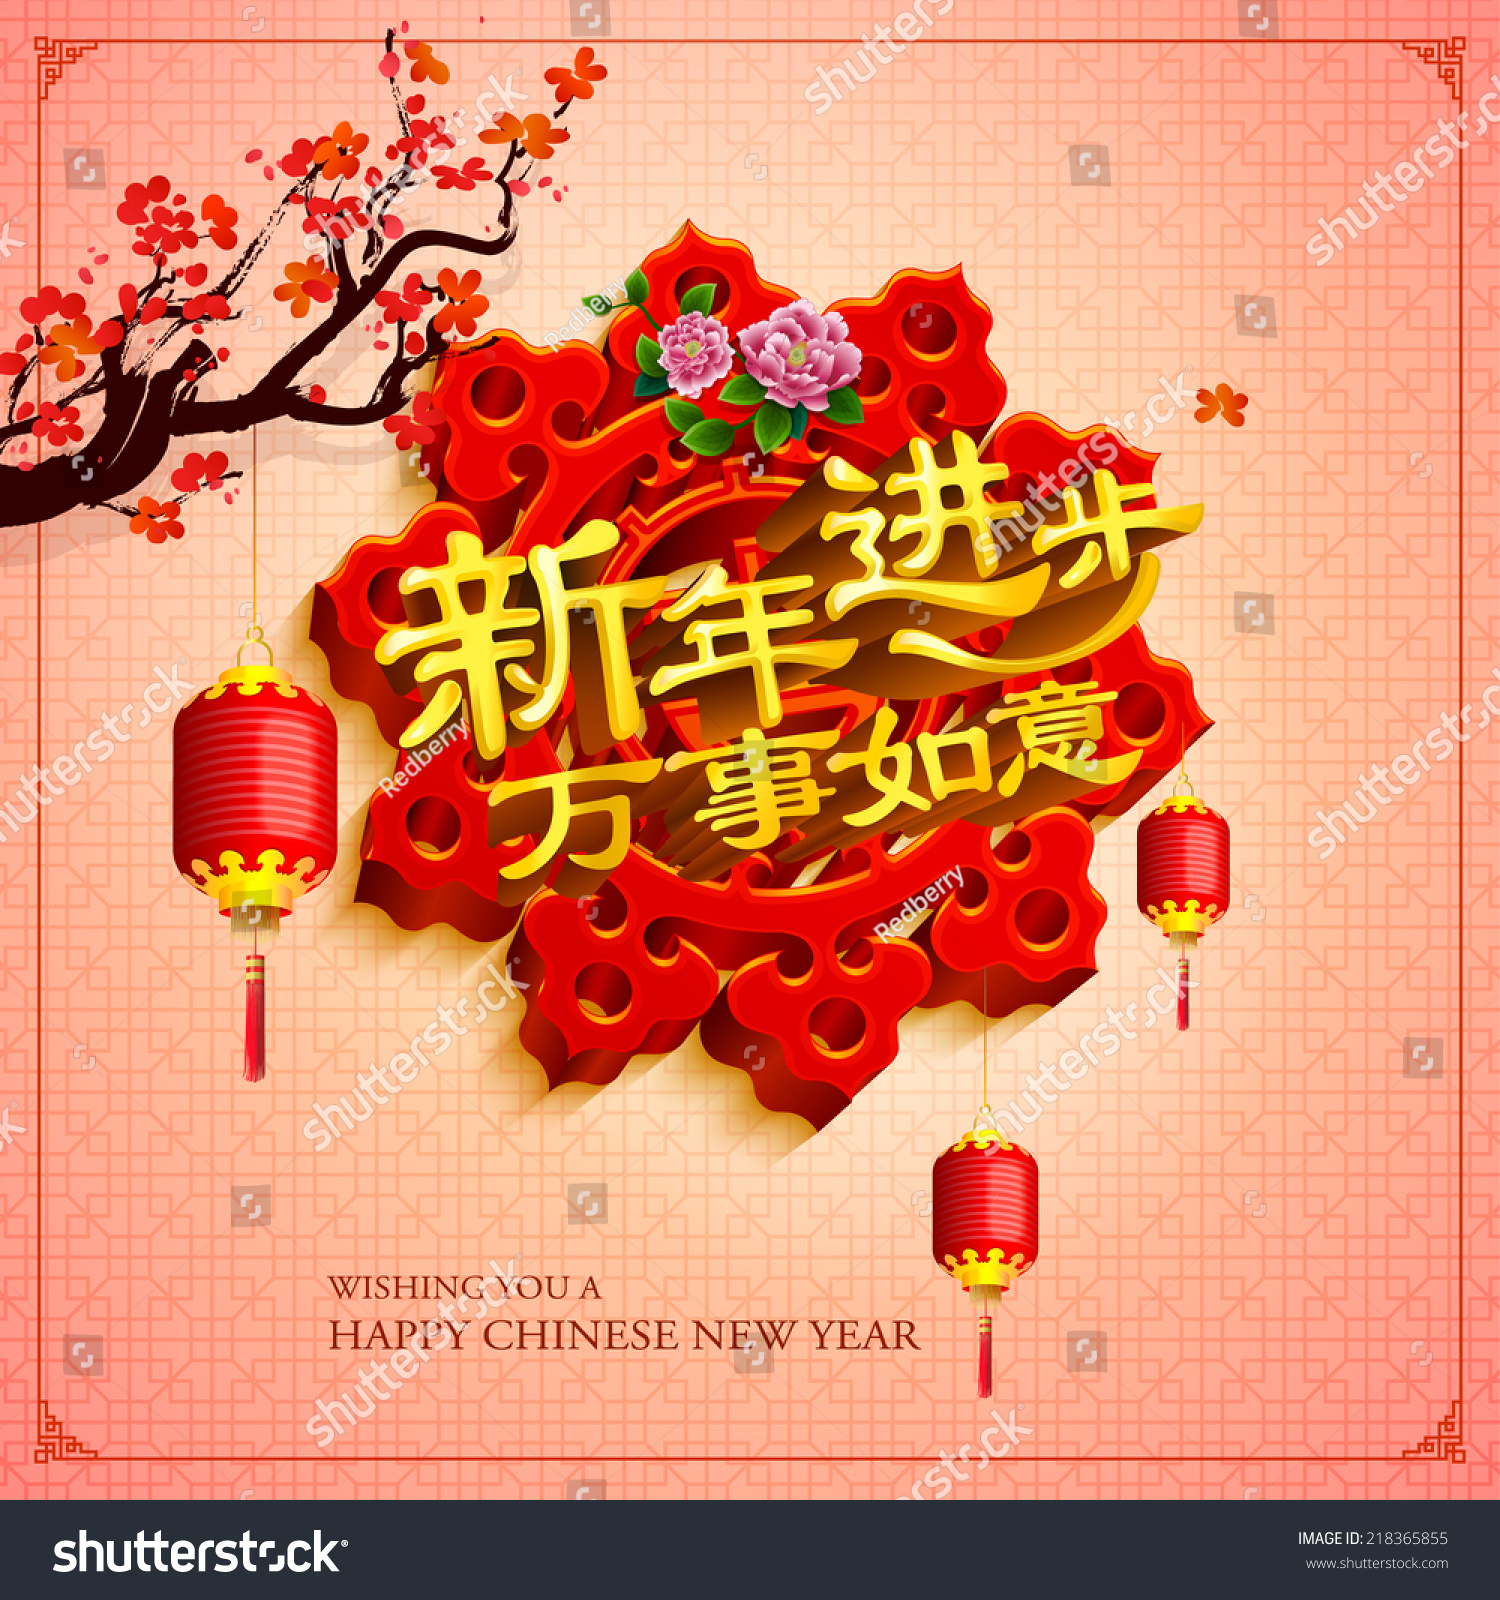 classy chinese new year card chinese character xin nian jin pu means